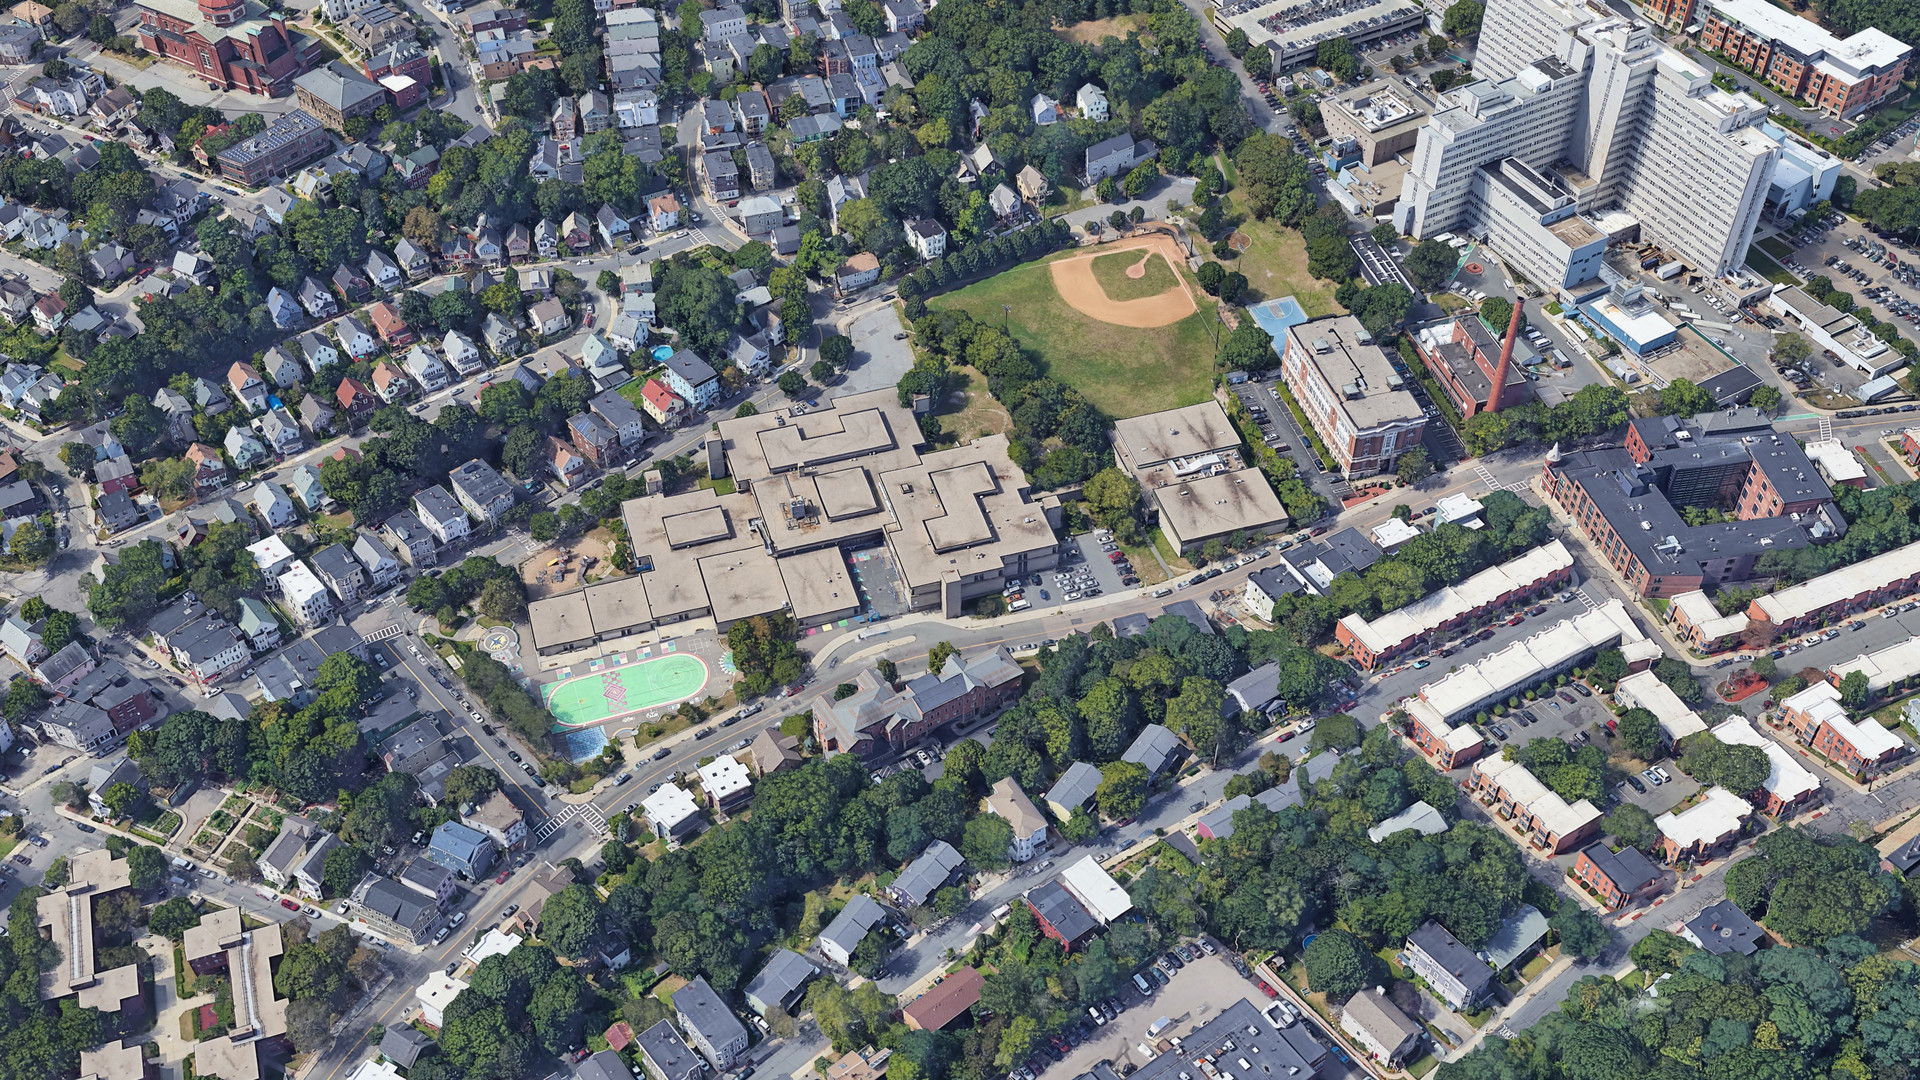 SUMNER EARLY LEARNING CENTER AND ATHLETIC FIELD UPGRADES